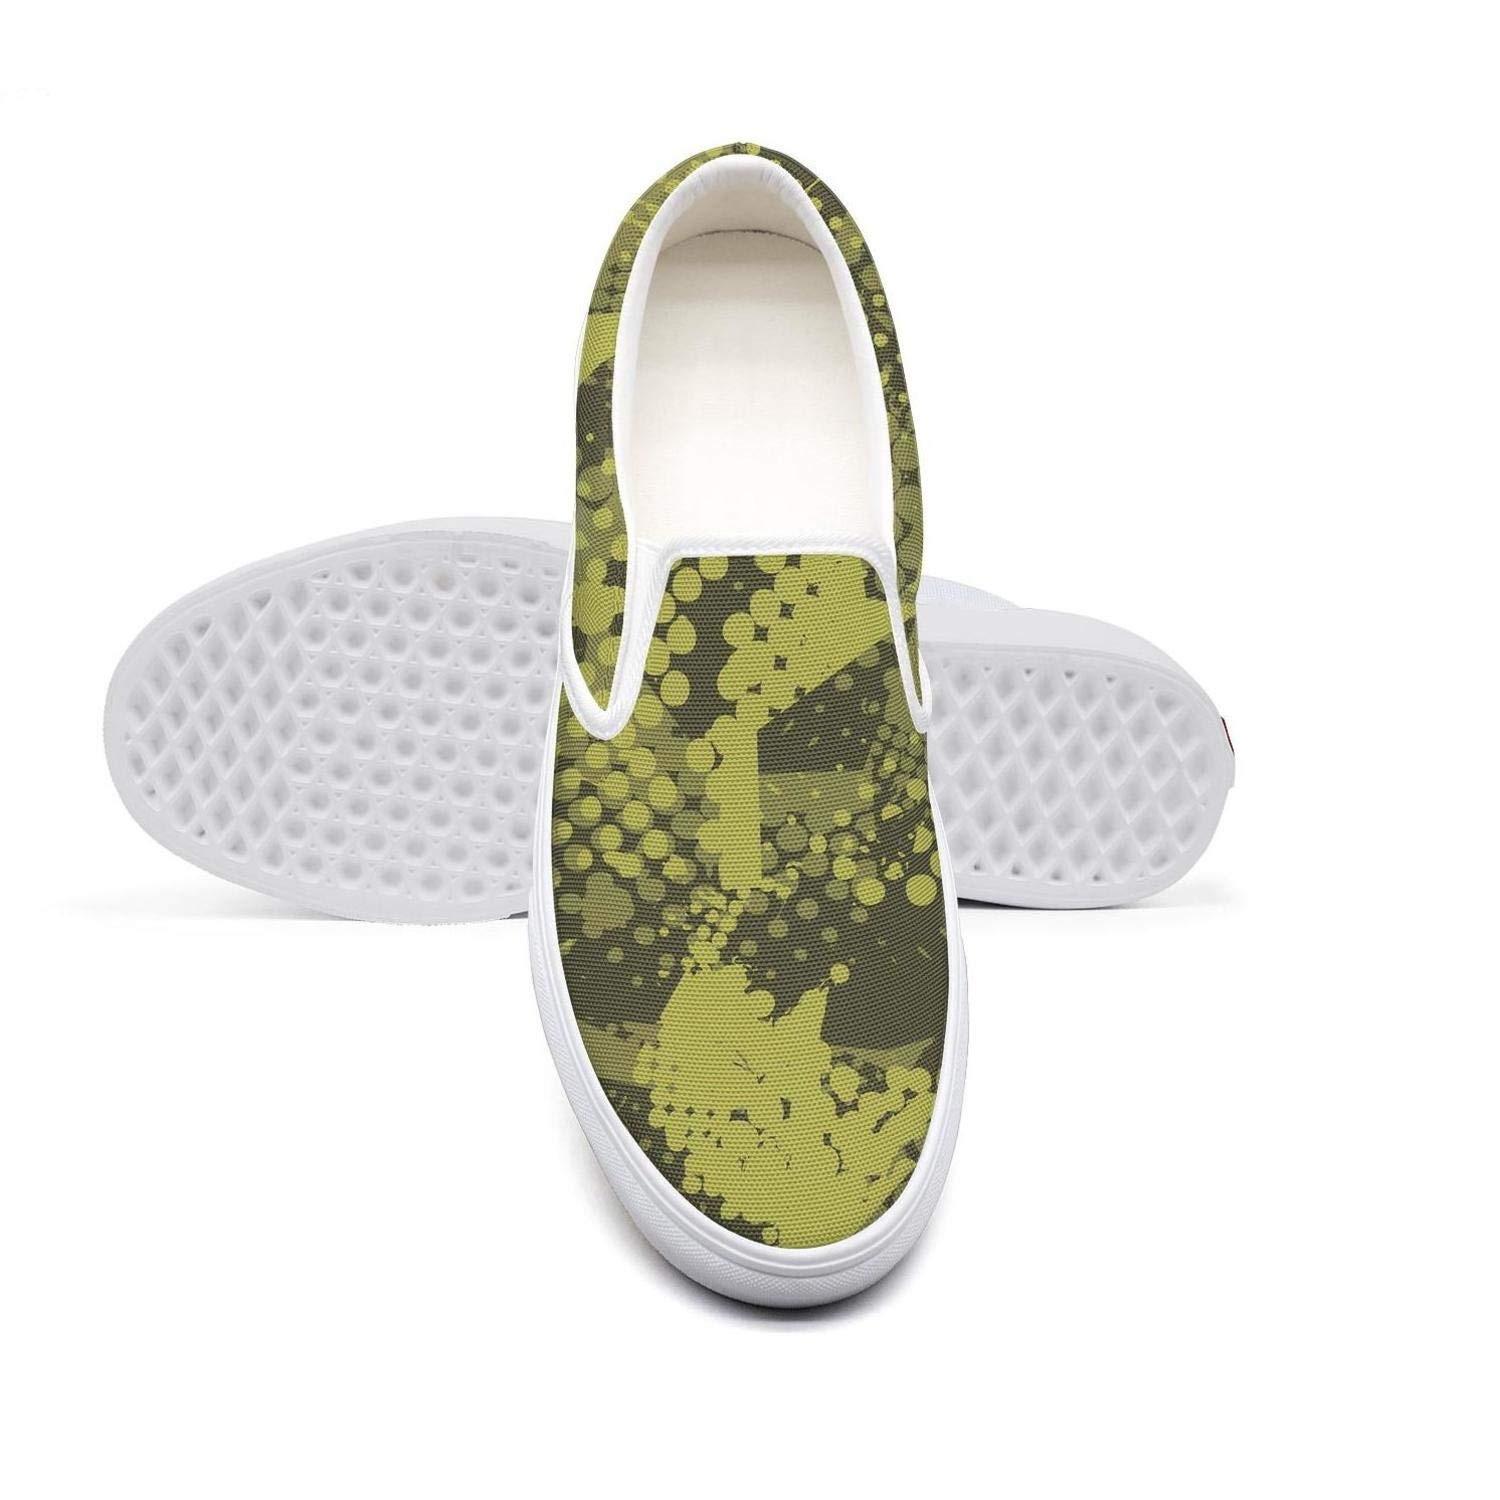 Beige Graceful Wild Cats African Sports Shoes Trendy Slip-on for Women